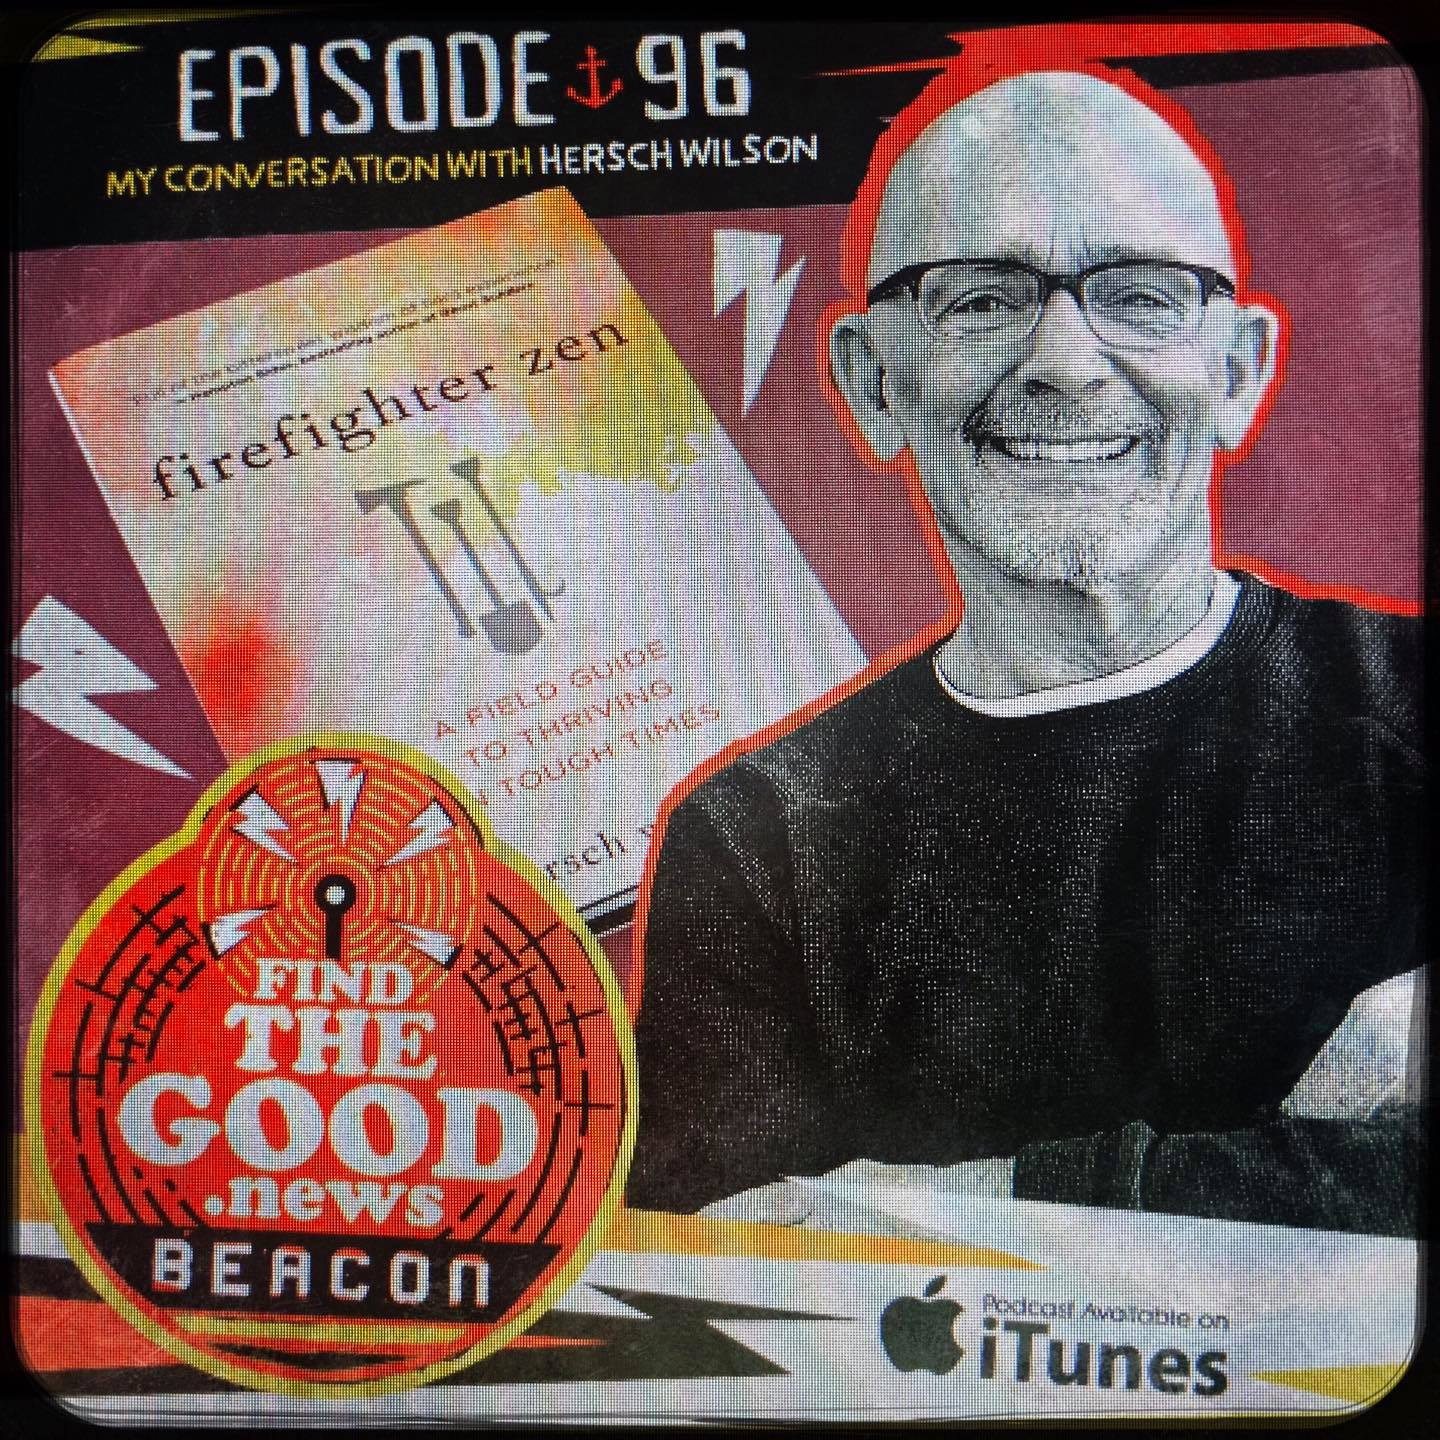 Episode 96—The Ph.D. in the Glitch—featuring Hersch Wilson, author of Firefighter Zen: A Field Guide to Thriving in Tough Times